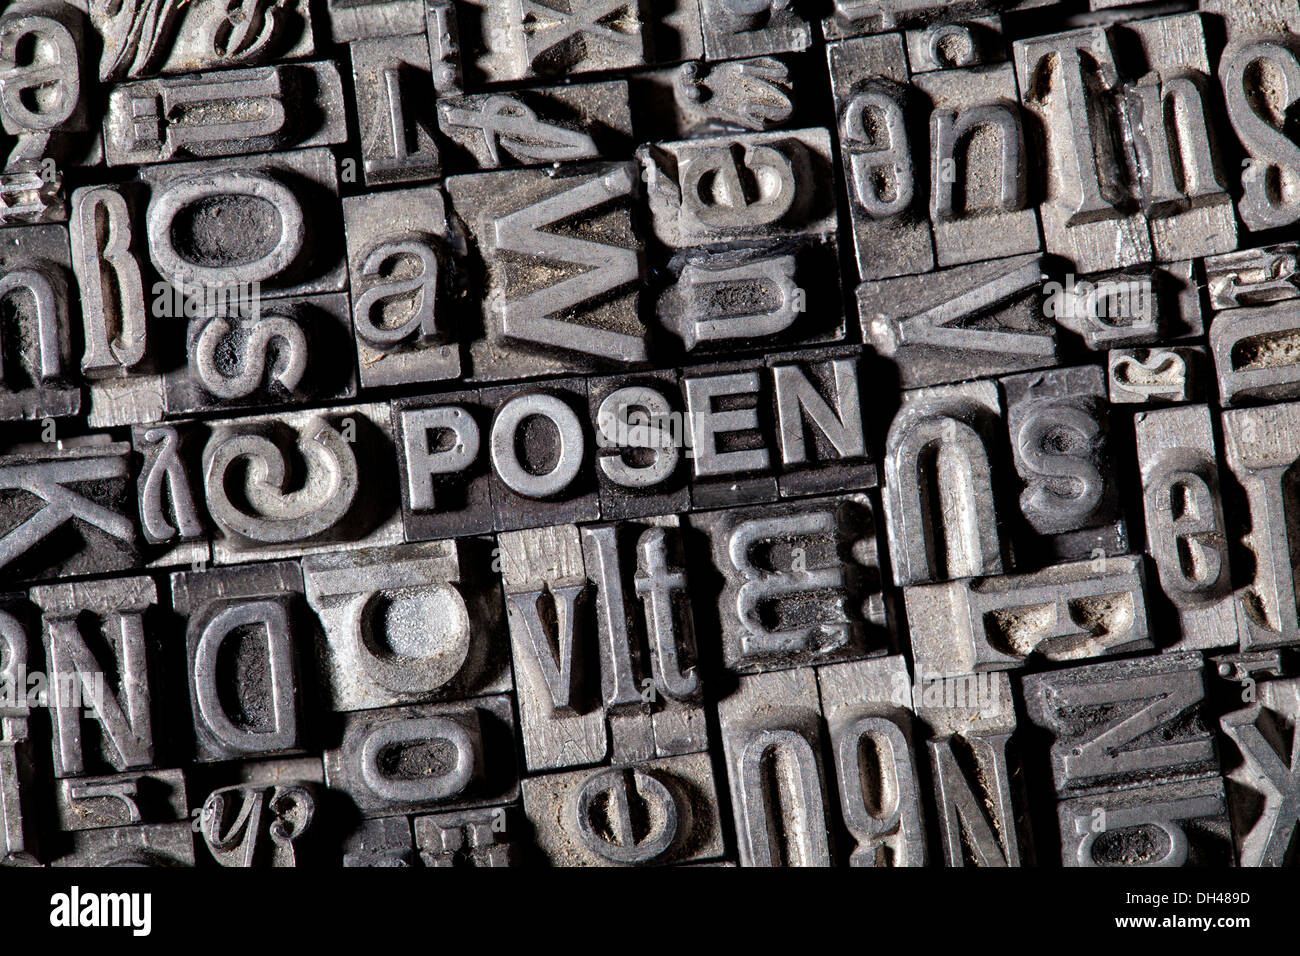 Old lead letters forming the word 'posen, German for 'to pose'' - Stock Image